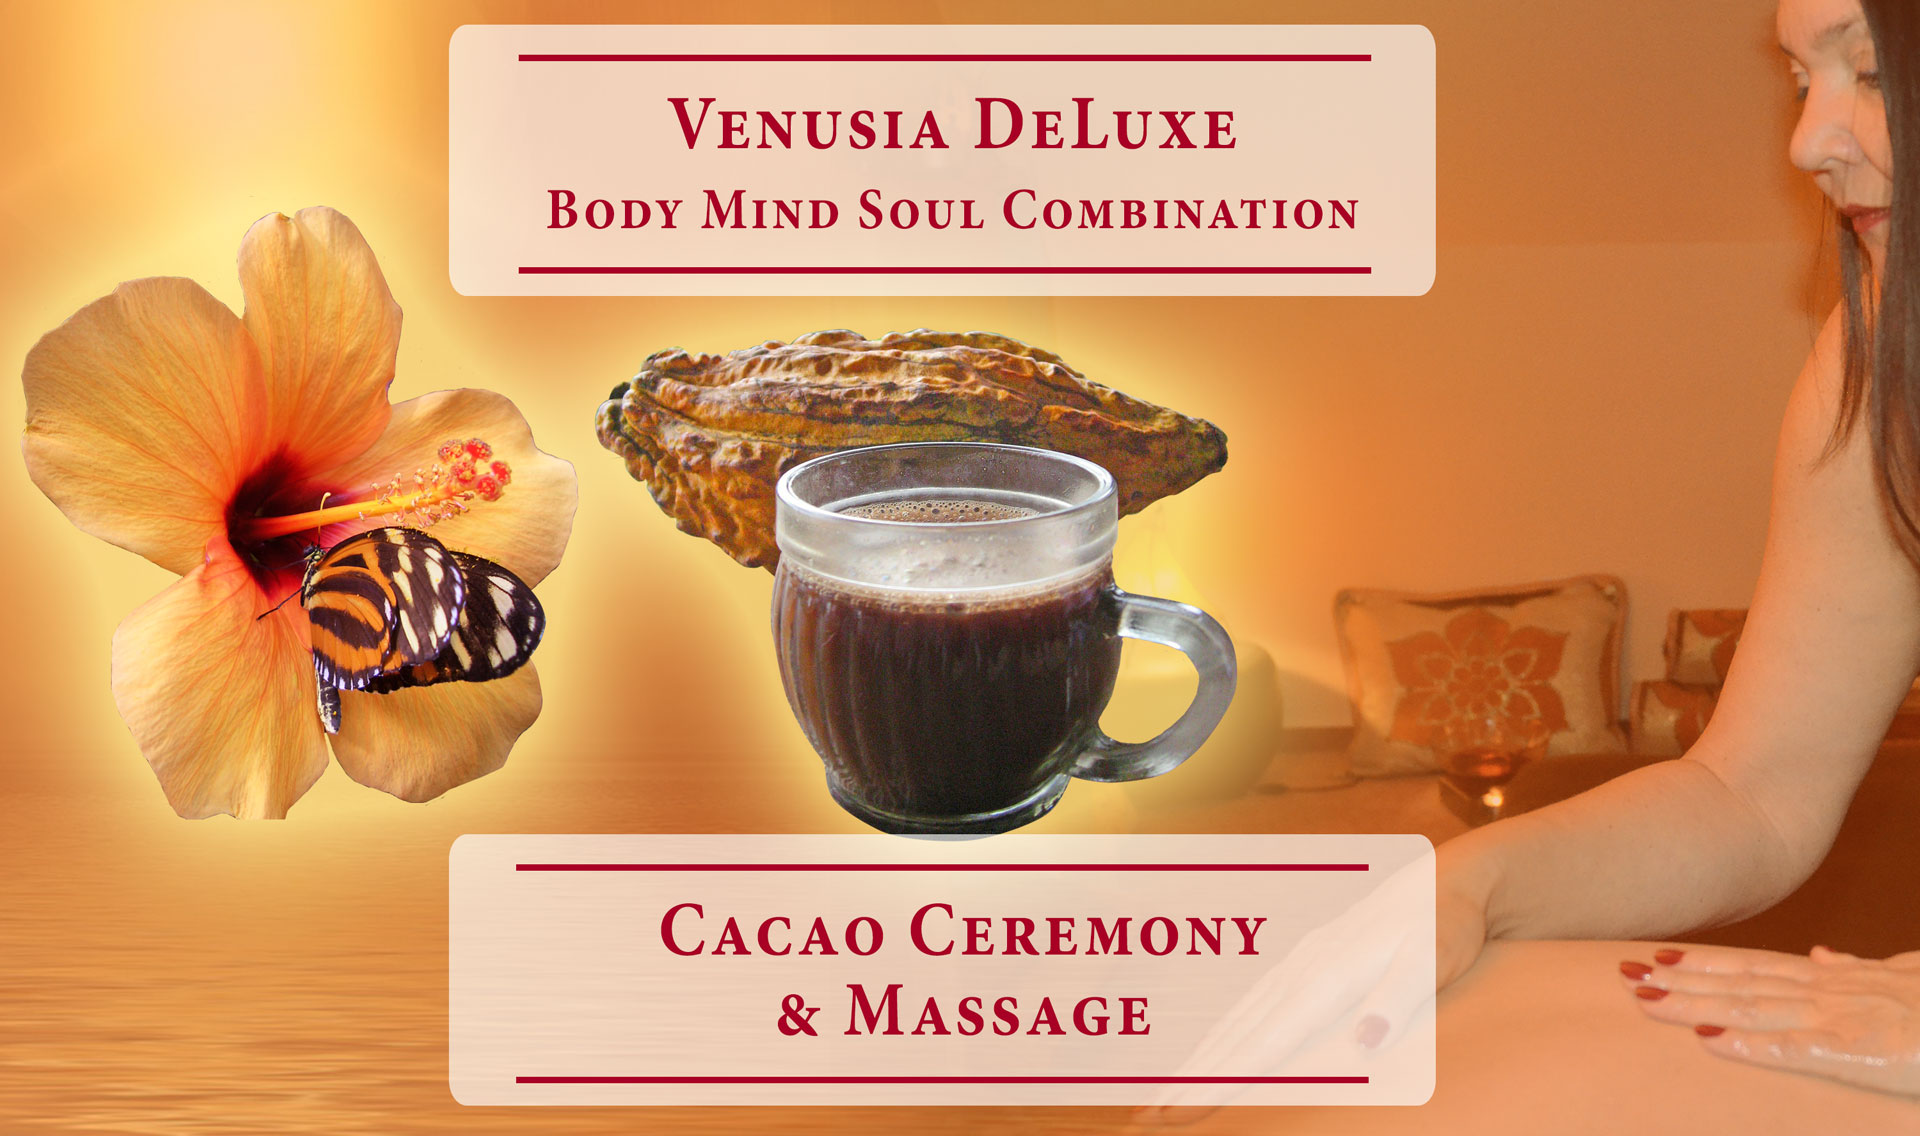 Cacao Ceremony & Massage